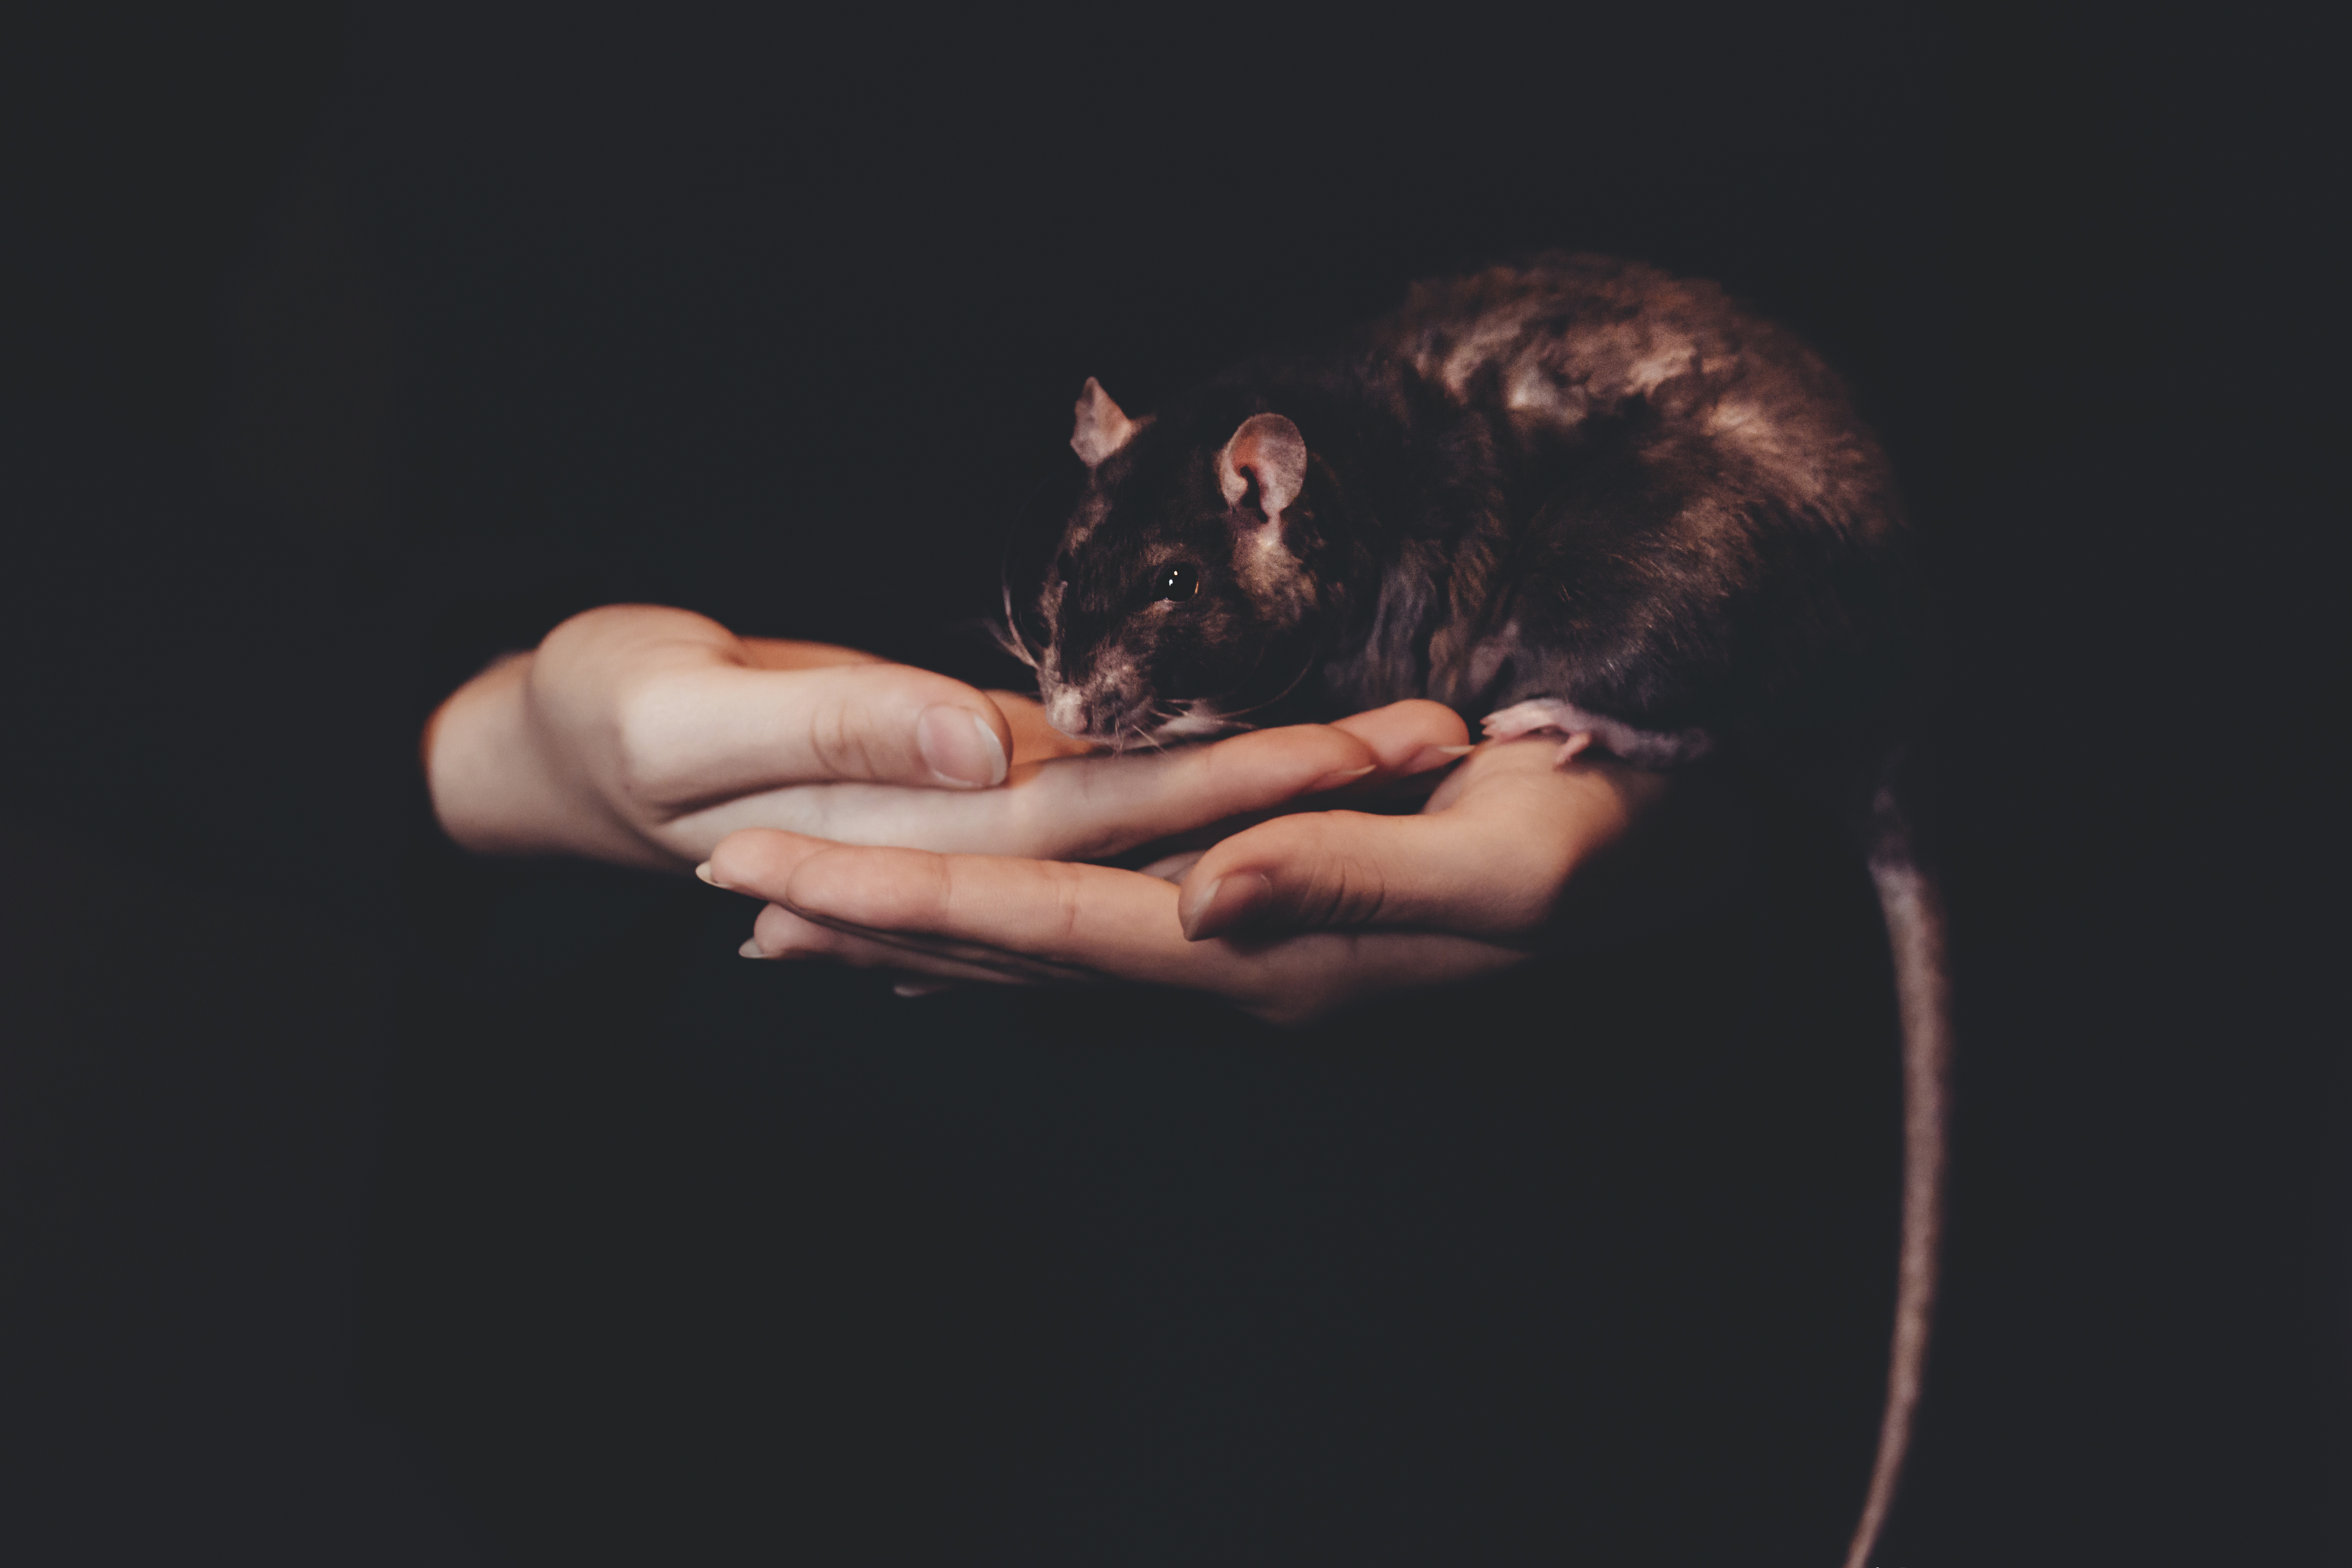 Girl holding a rat, Rat, Portrait, Pet, Person, HQ Photo